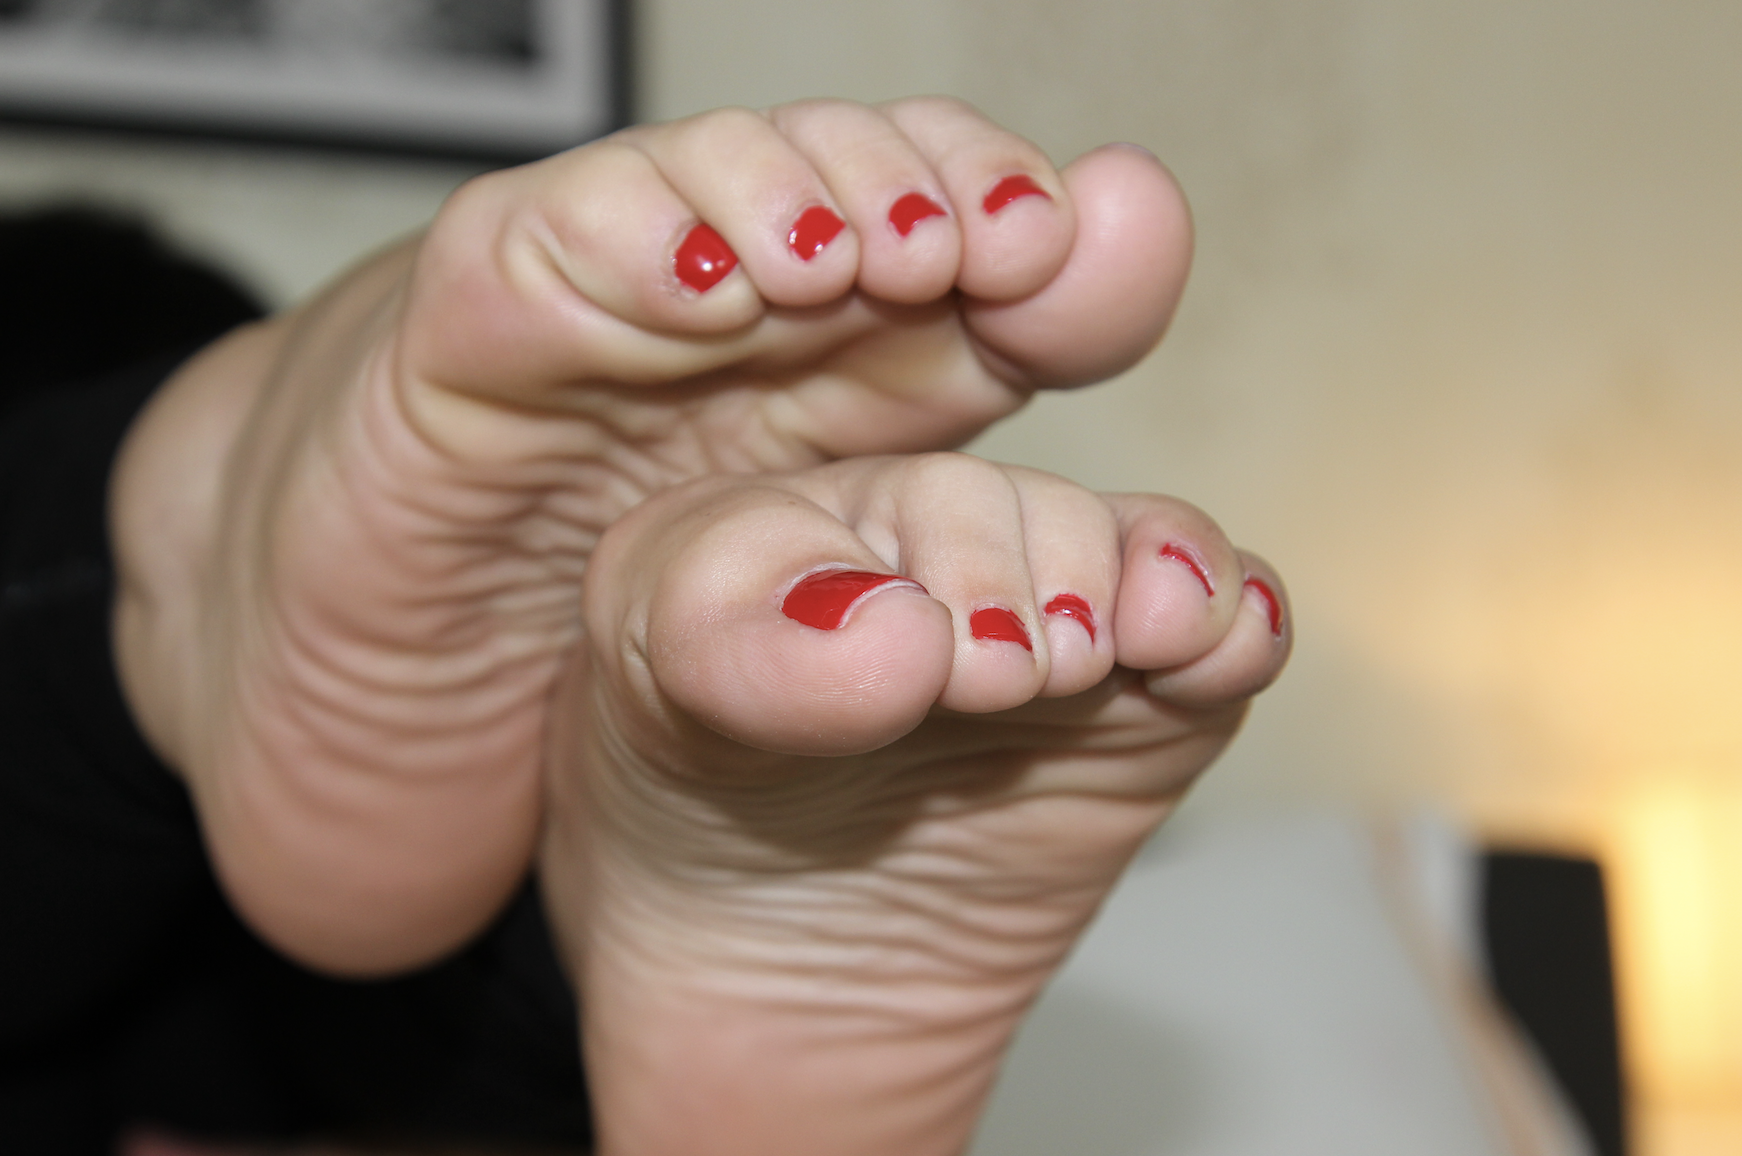 Milleys sexy Red toesss.png